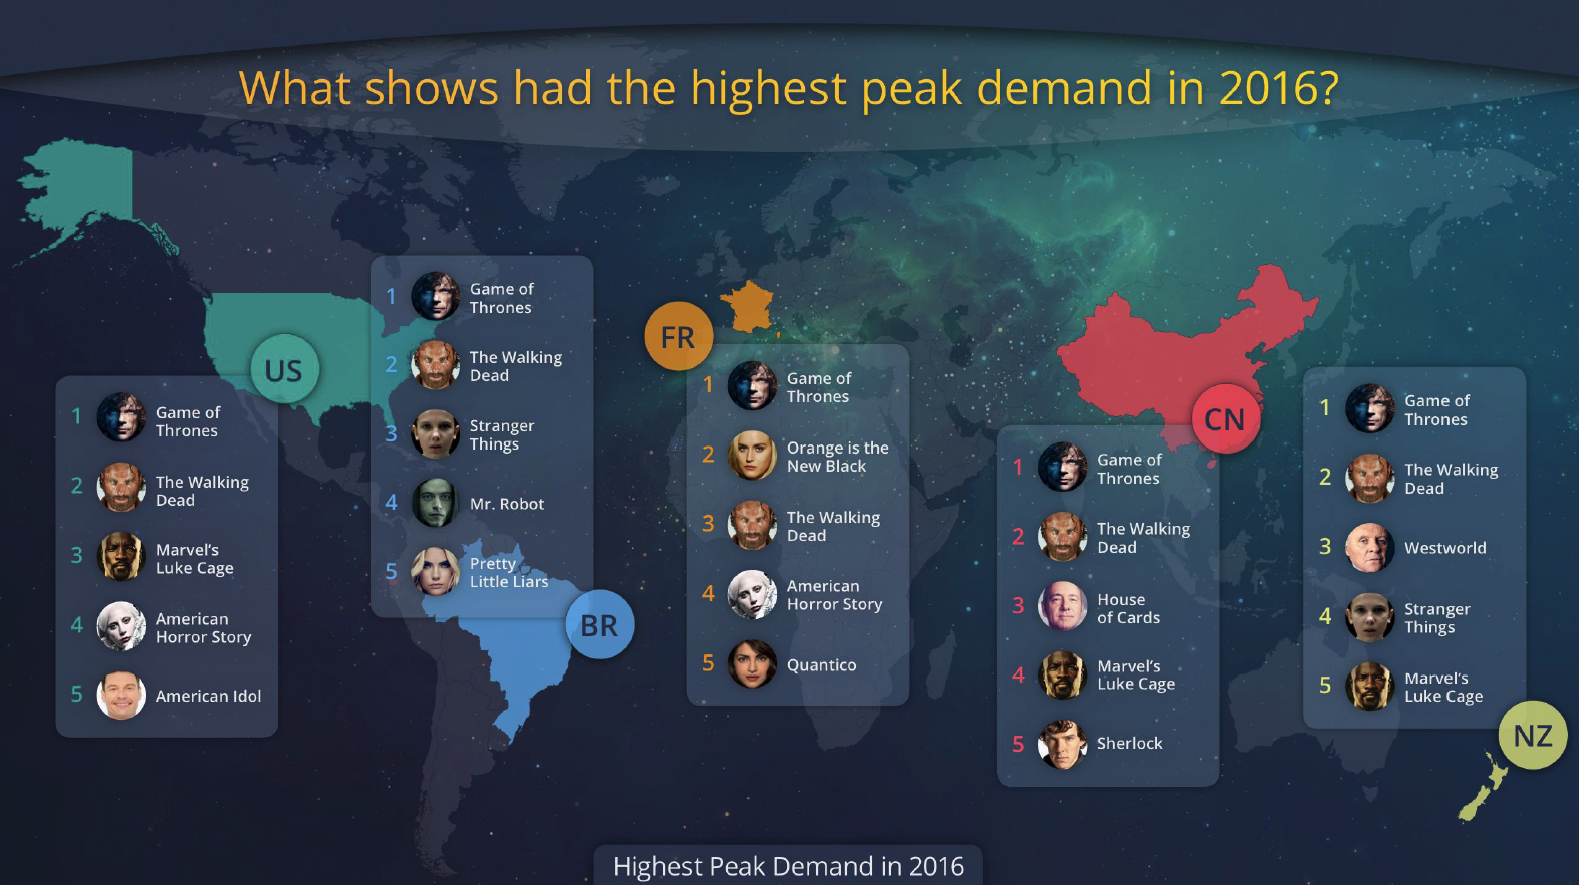 Understanding Audience Demand for TV Shows